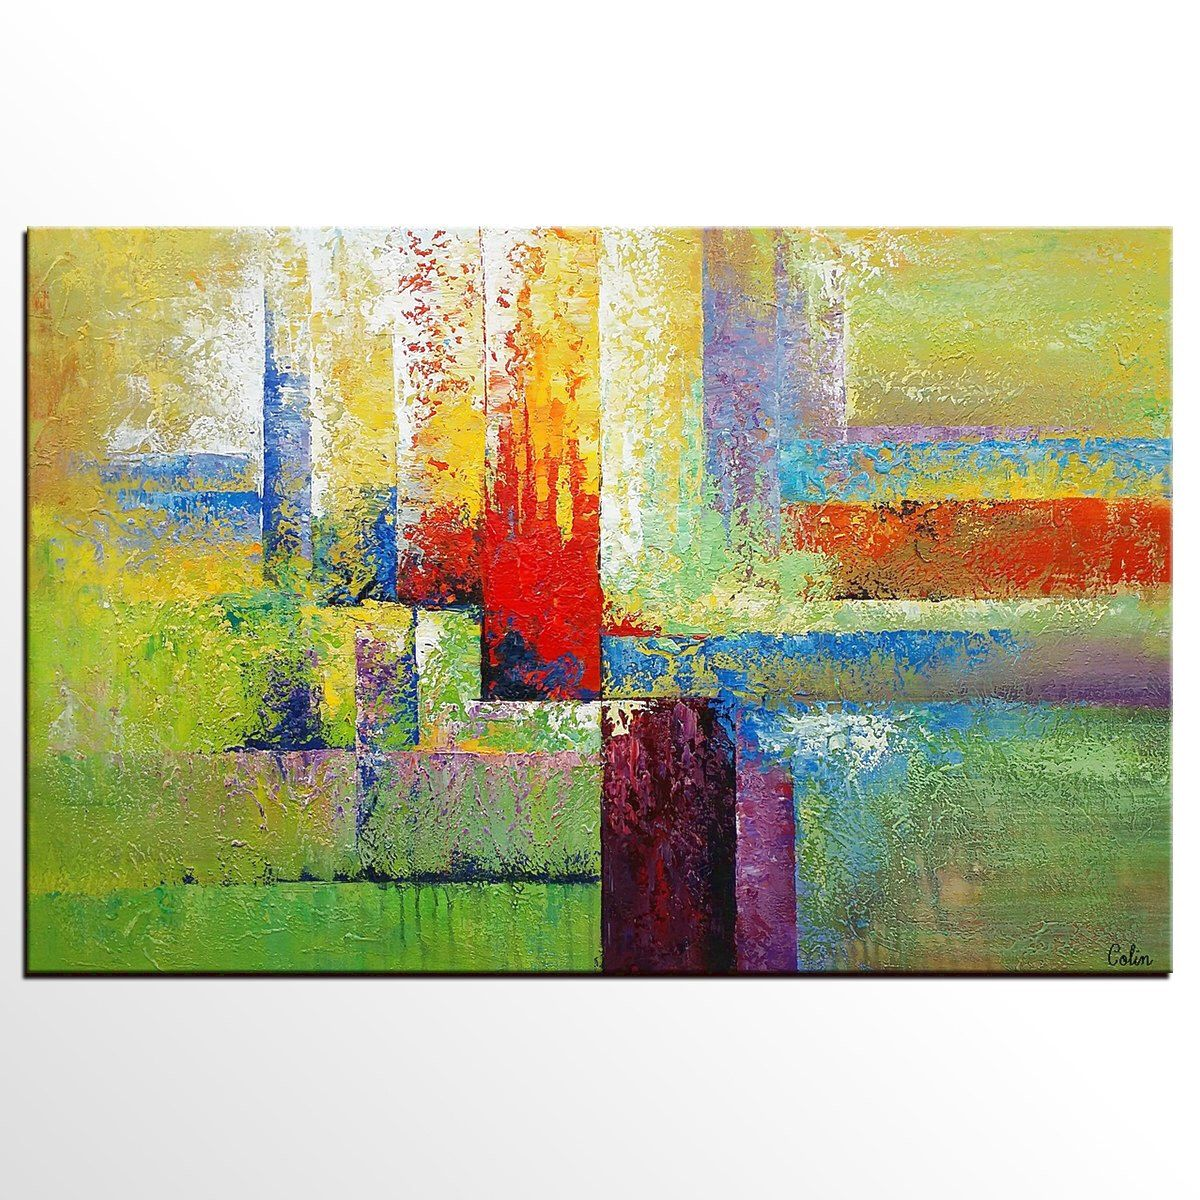 Muur Canvas Abstract Art Painting Original Painting Bedroom Wall Art